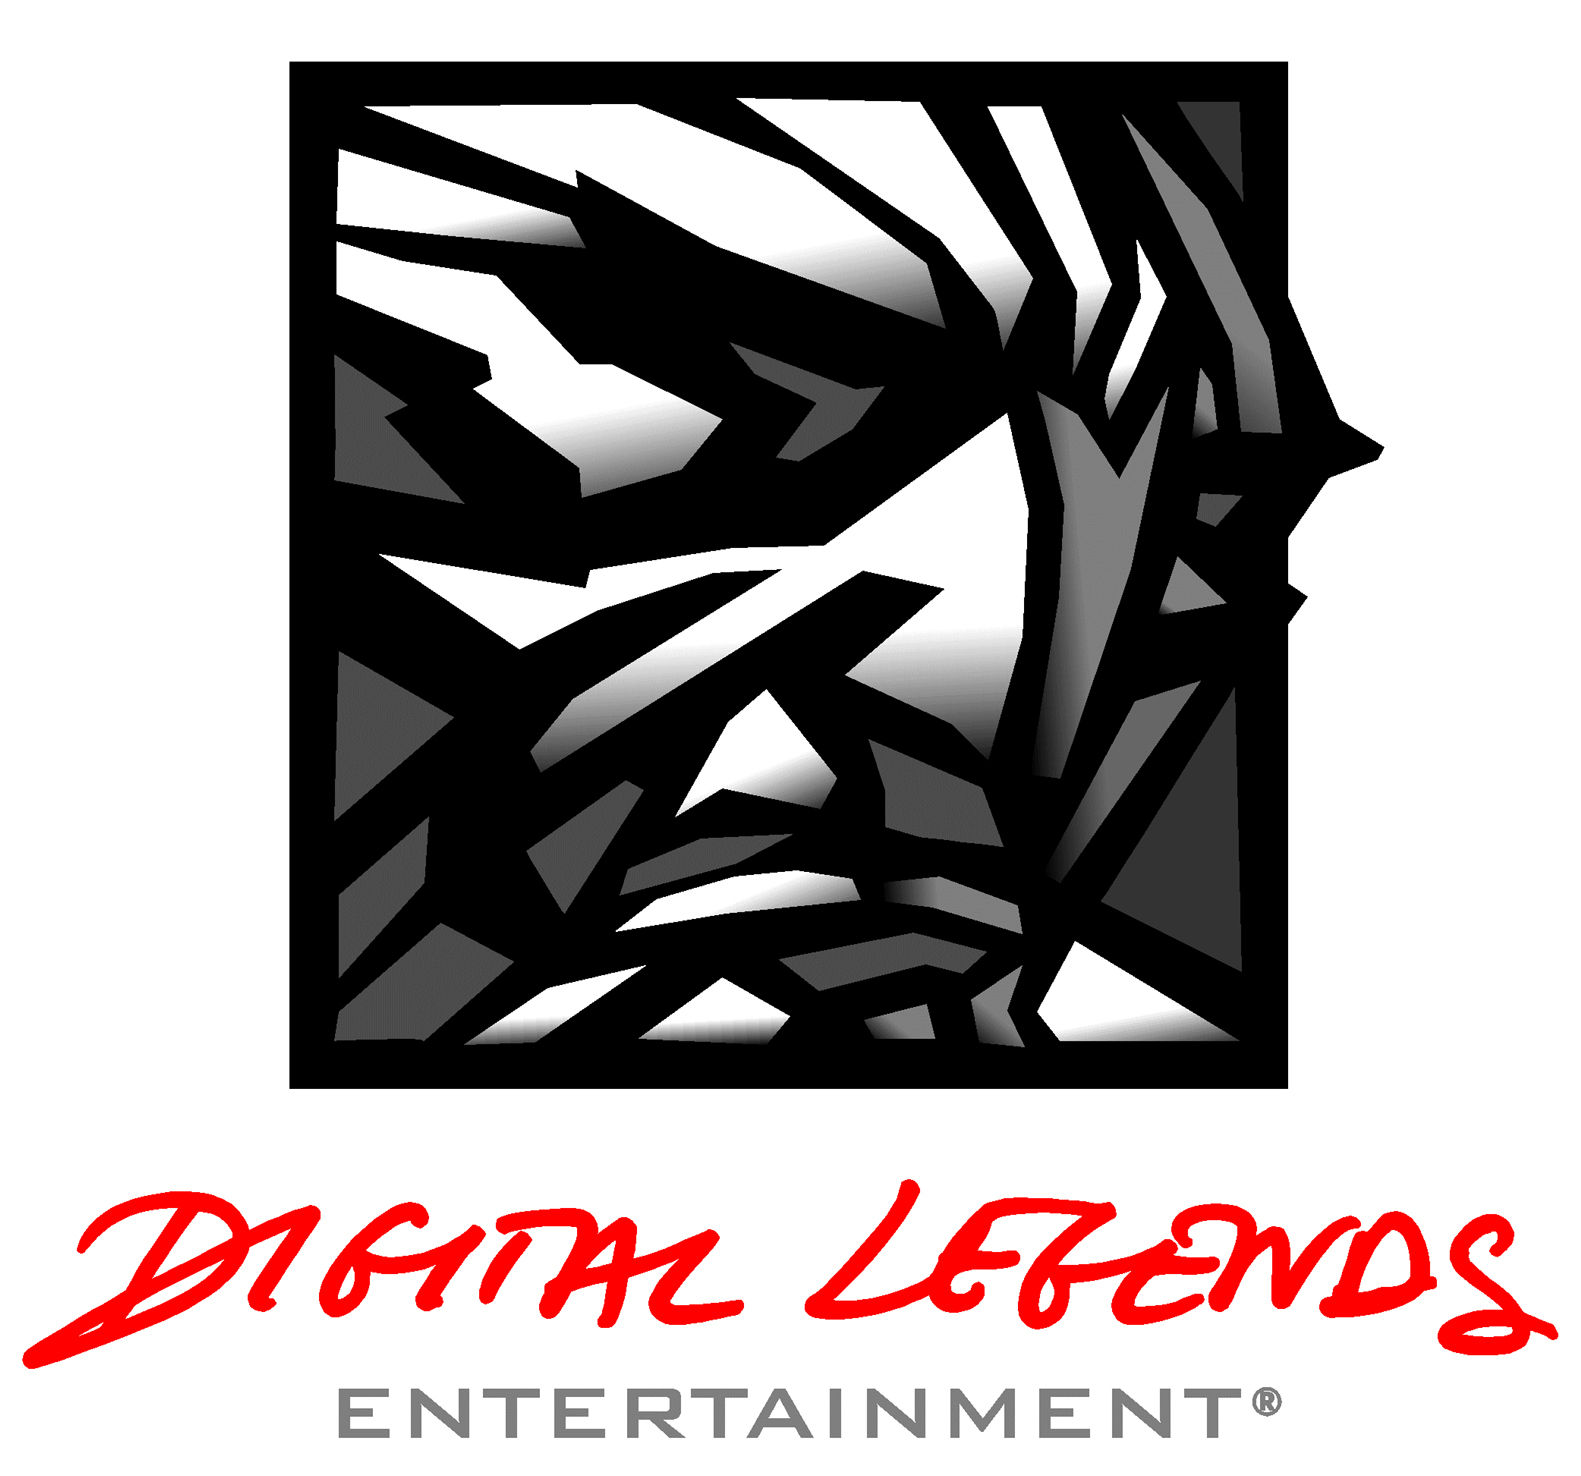 logo_blanco_DIGITAL_LEGENDS